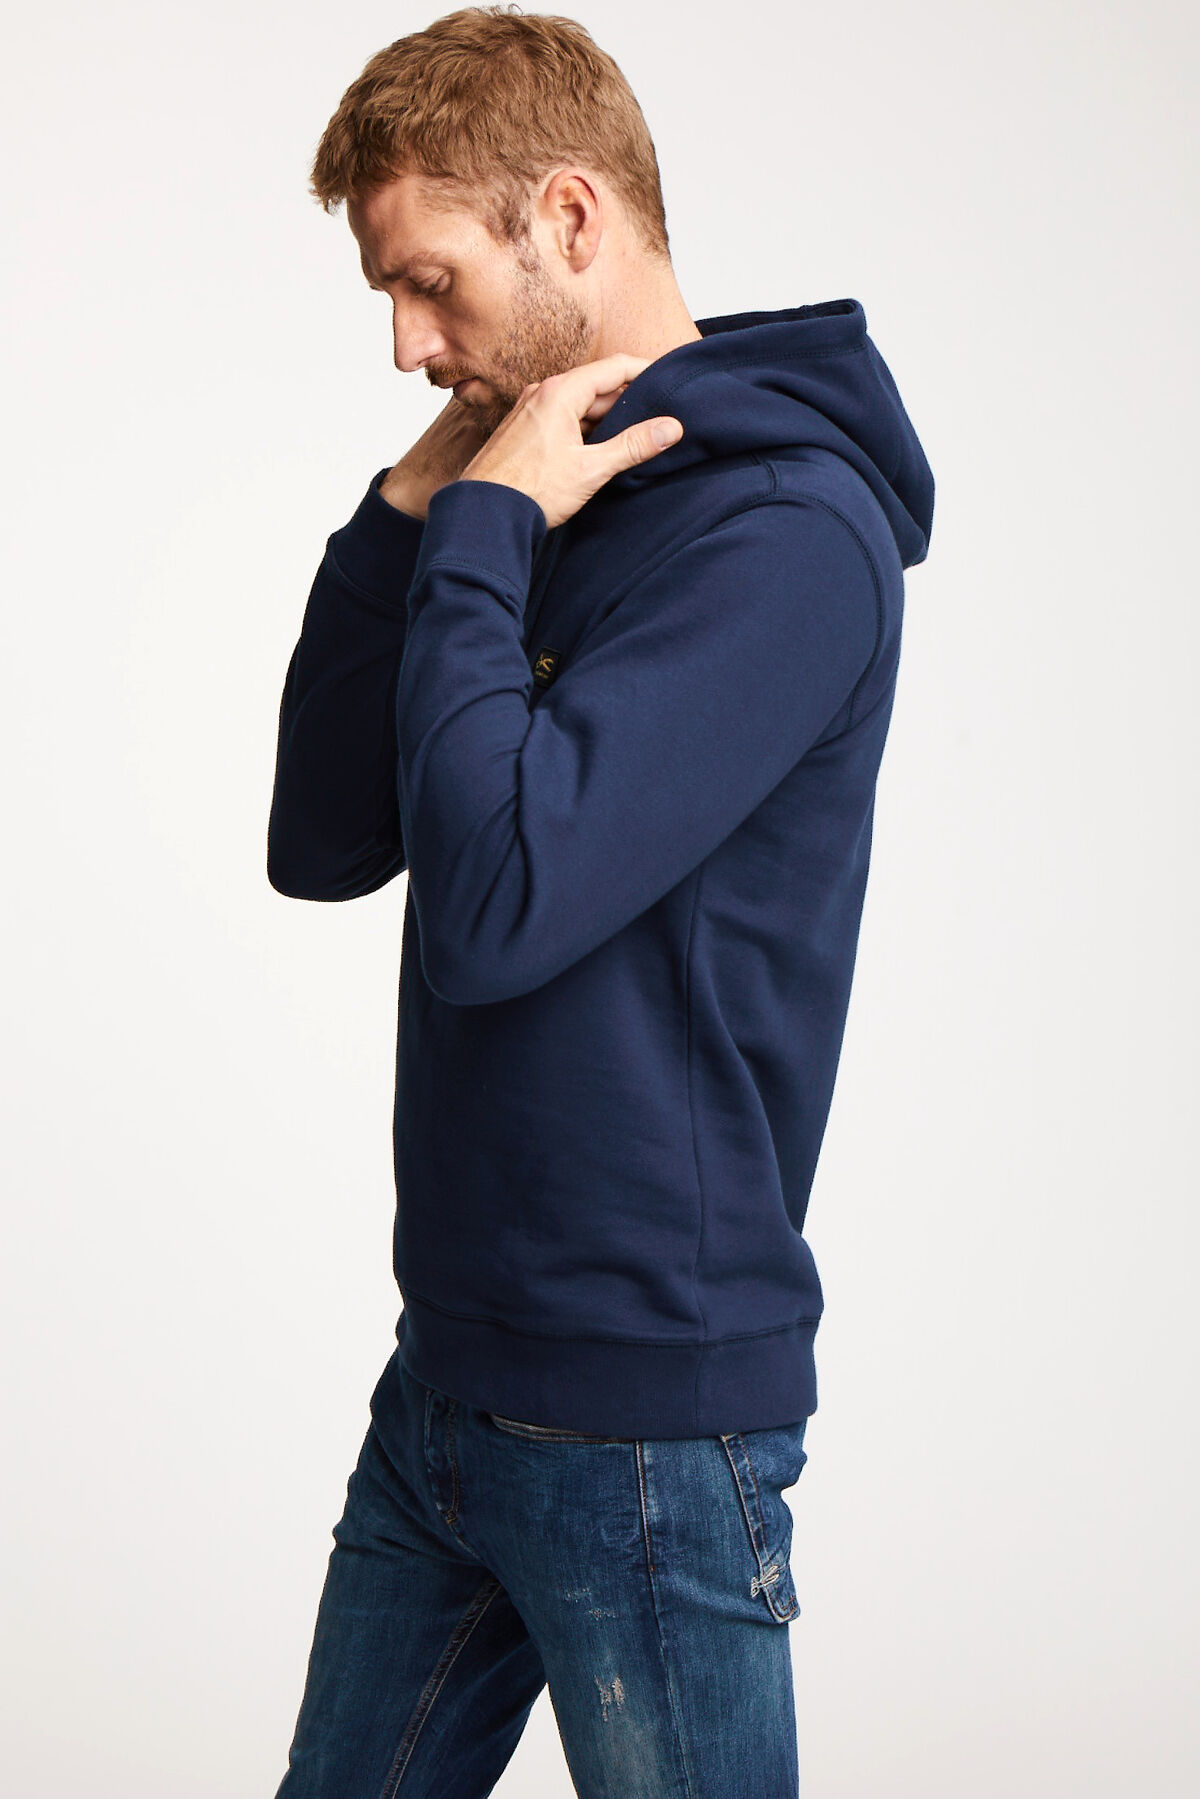 DENHAM APPLIQUE HOODY Soft Cotton Fleece - Slim Fit